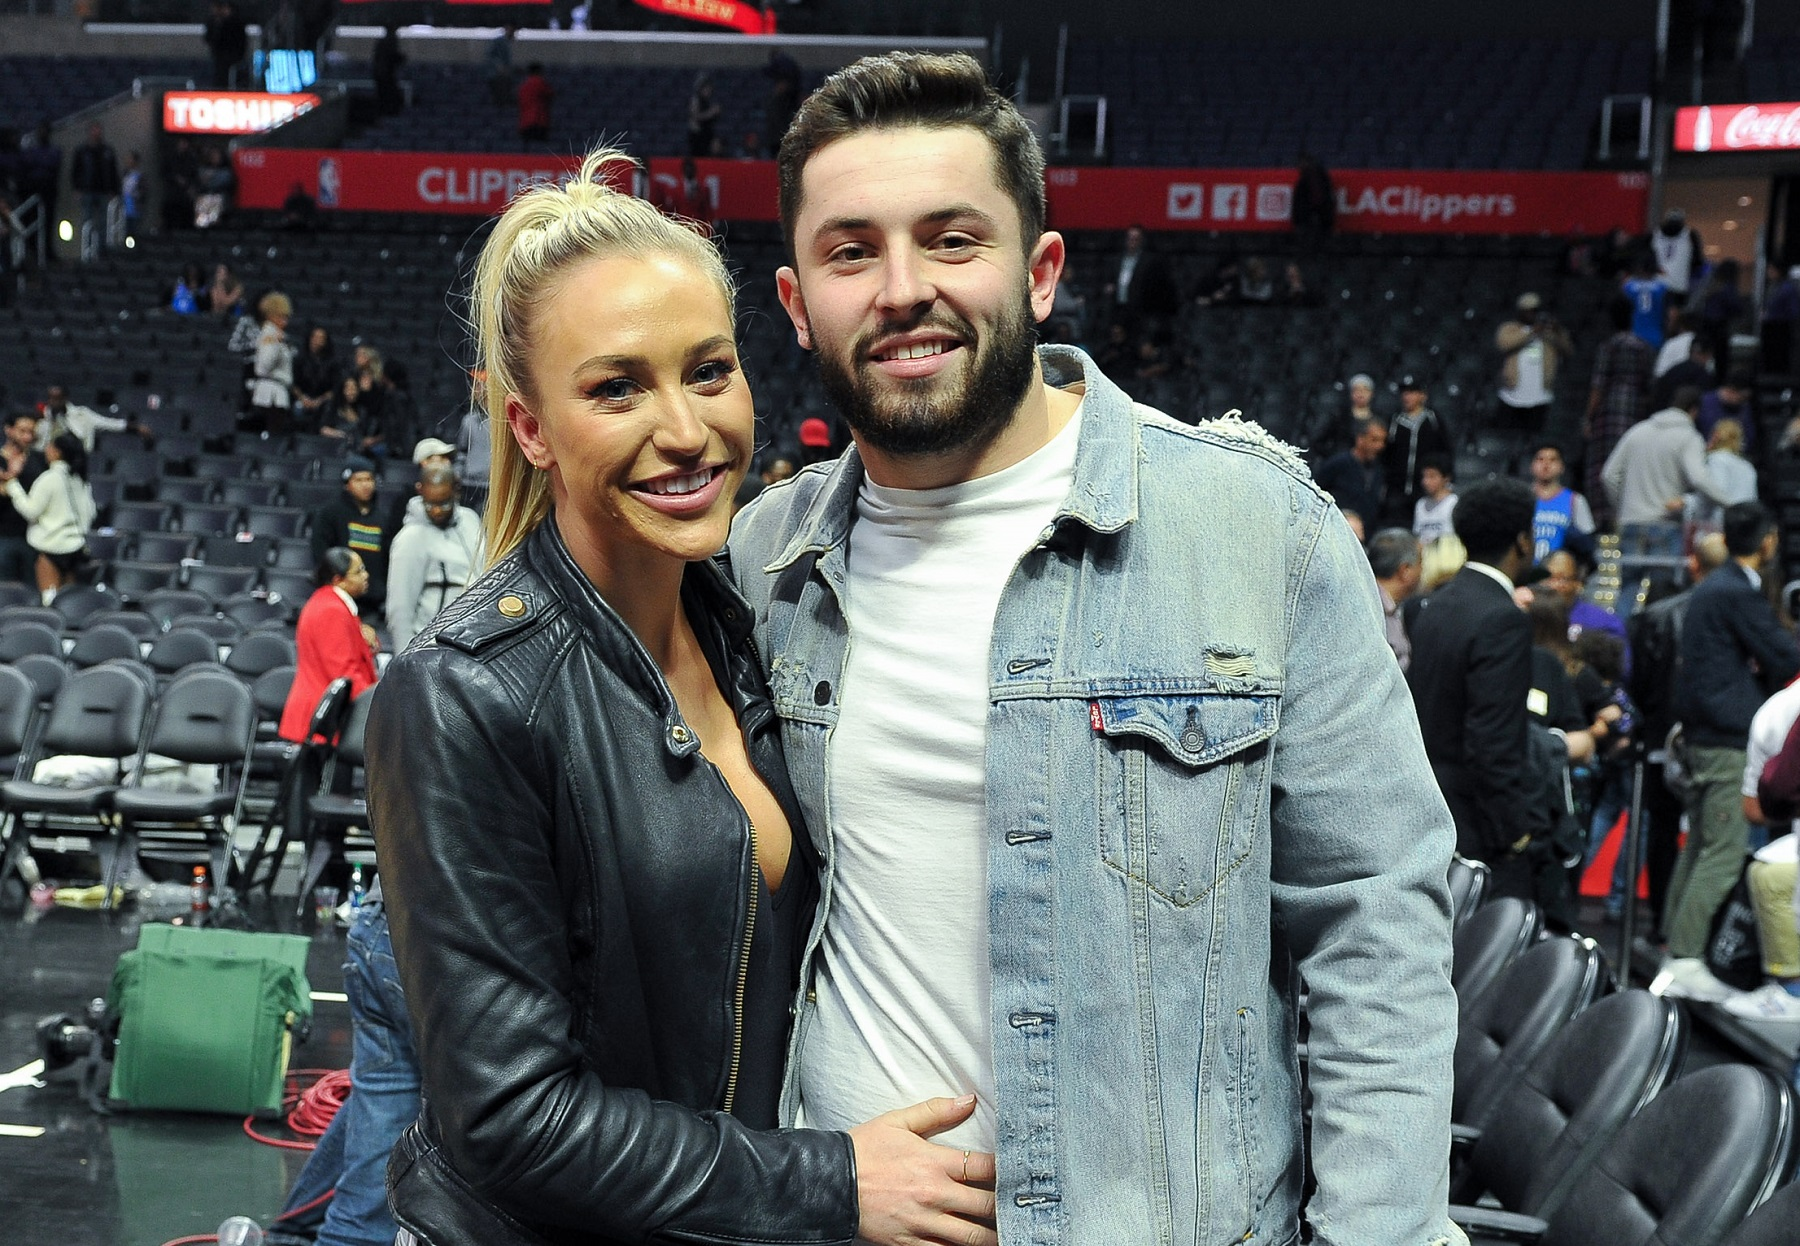 Baker Mayfield's Wife and Browns Fans Brought a Hospice Patient To Cleveland To Revel in the Playoff Joy